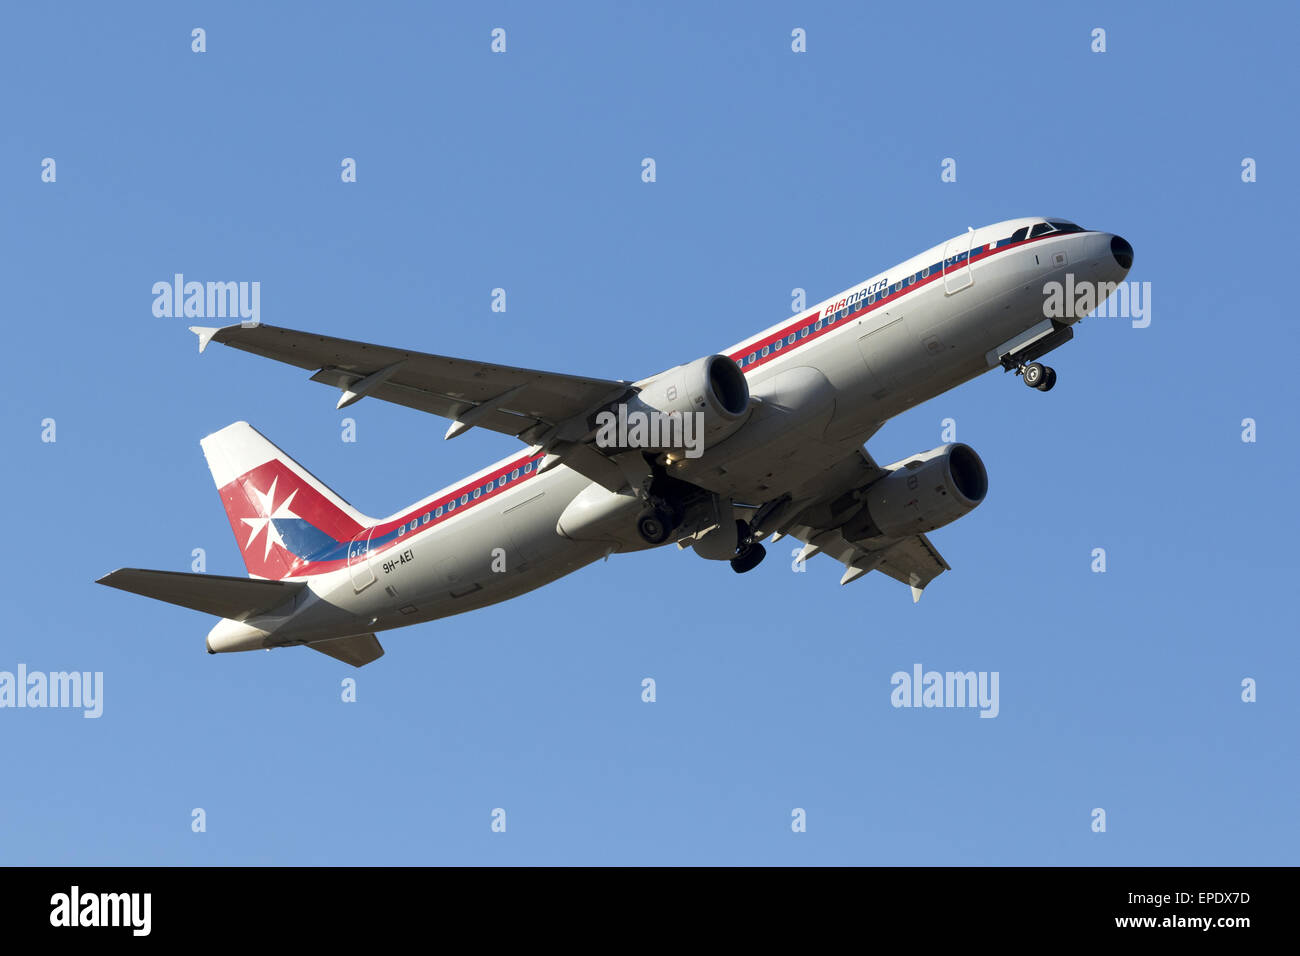 Air Malta Airbus A320-214 (9H-AEI) in retro livery takes off from runway 13. - Stock Image